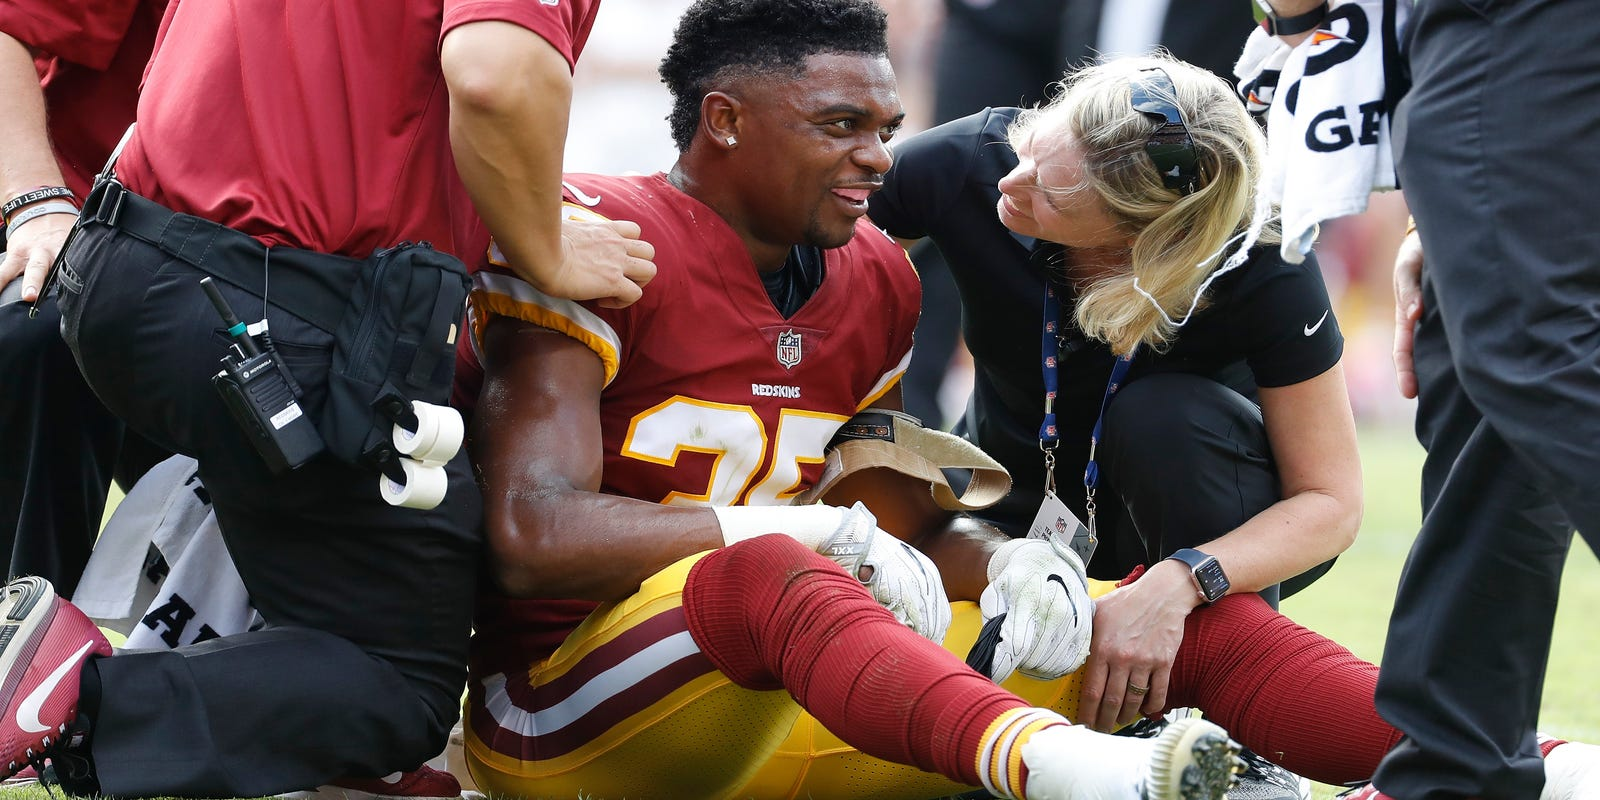 Redskins  Nicholson placed on non-injury list 0d5be0d5e